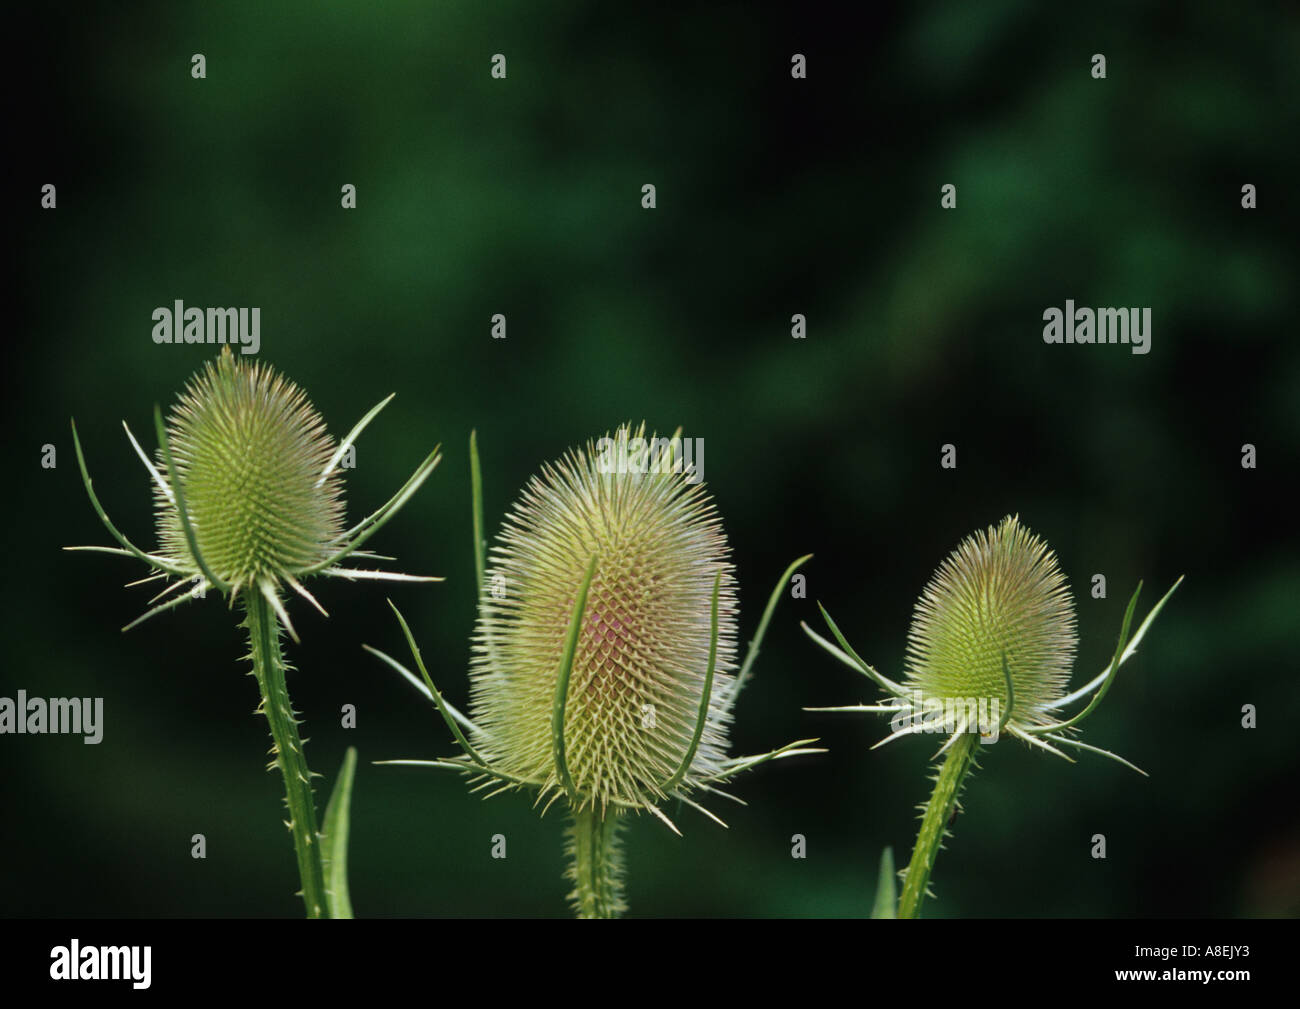 Teasels (Dipsacus fullonum) in the Uk - Stock Image